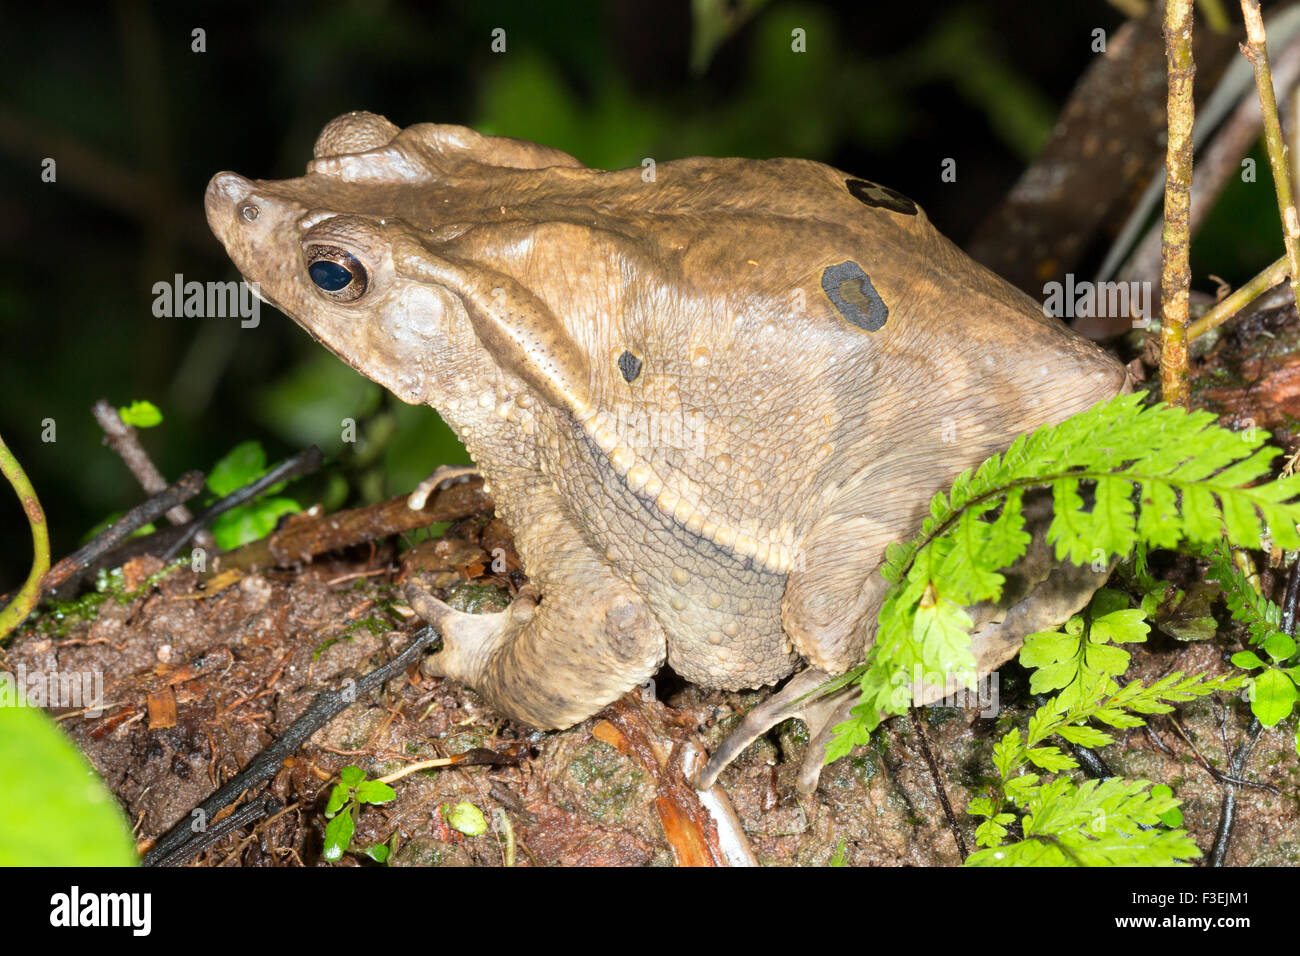 Crested Forest Toad (Rhinella dapsilis) roosting at night on a branch in the rainforest, Ecuador - Stock Image